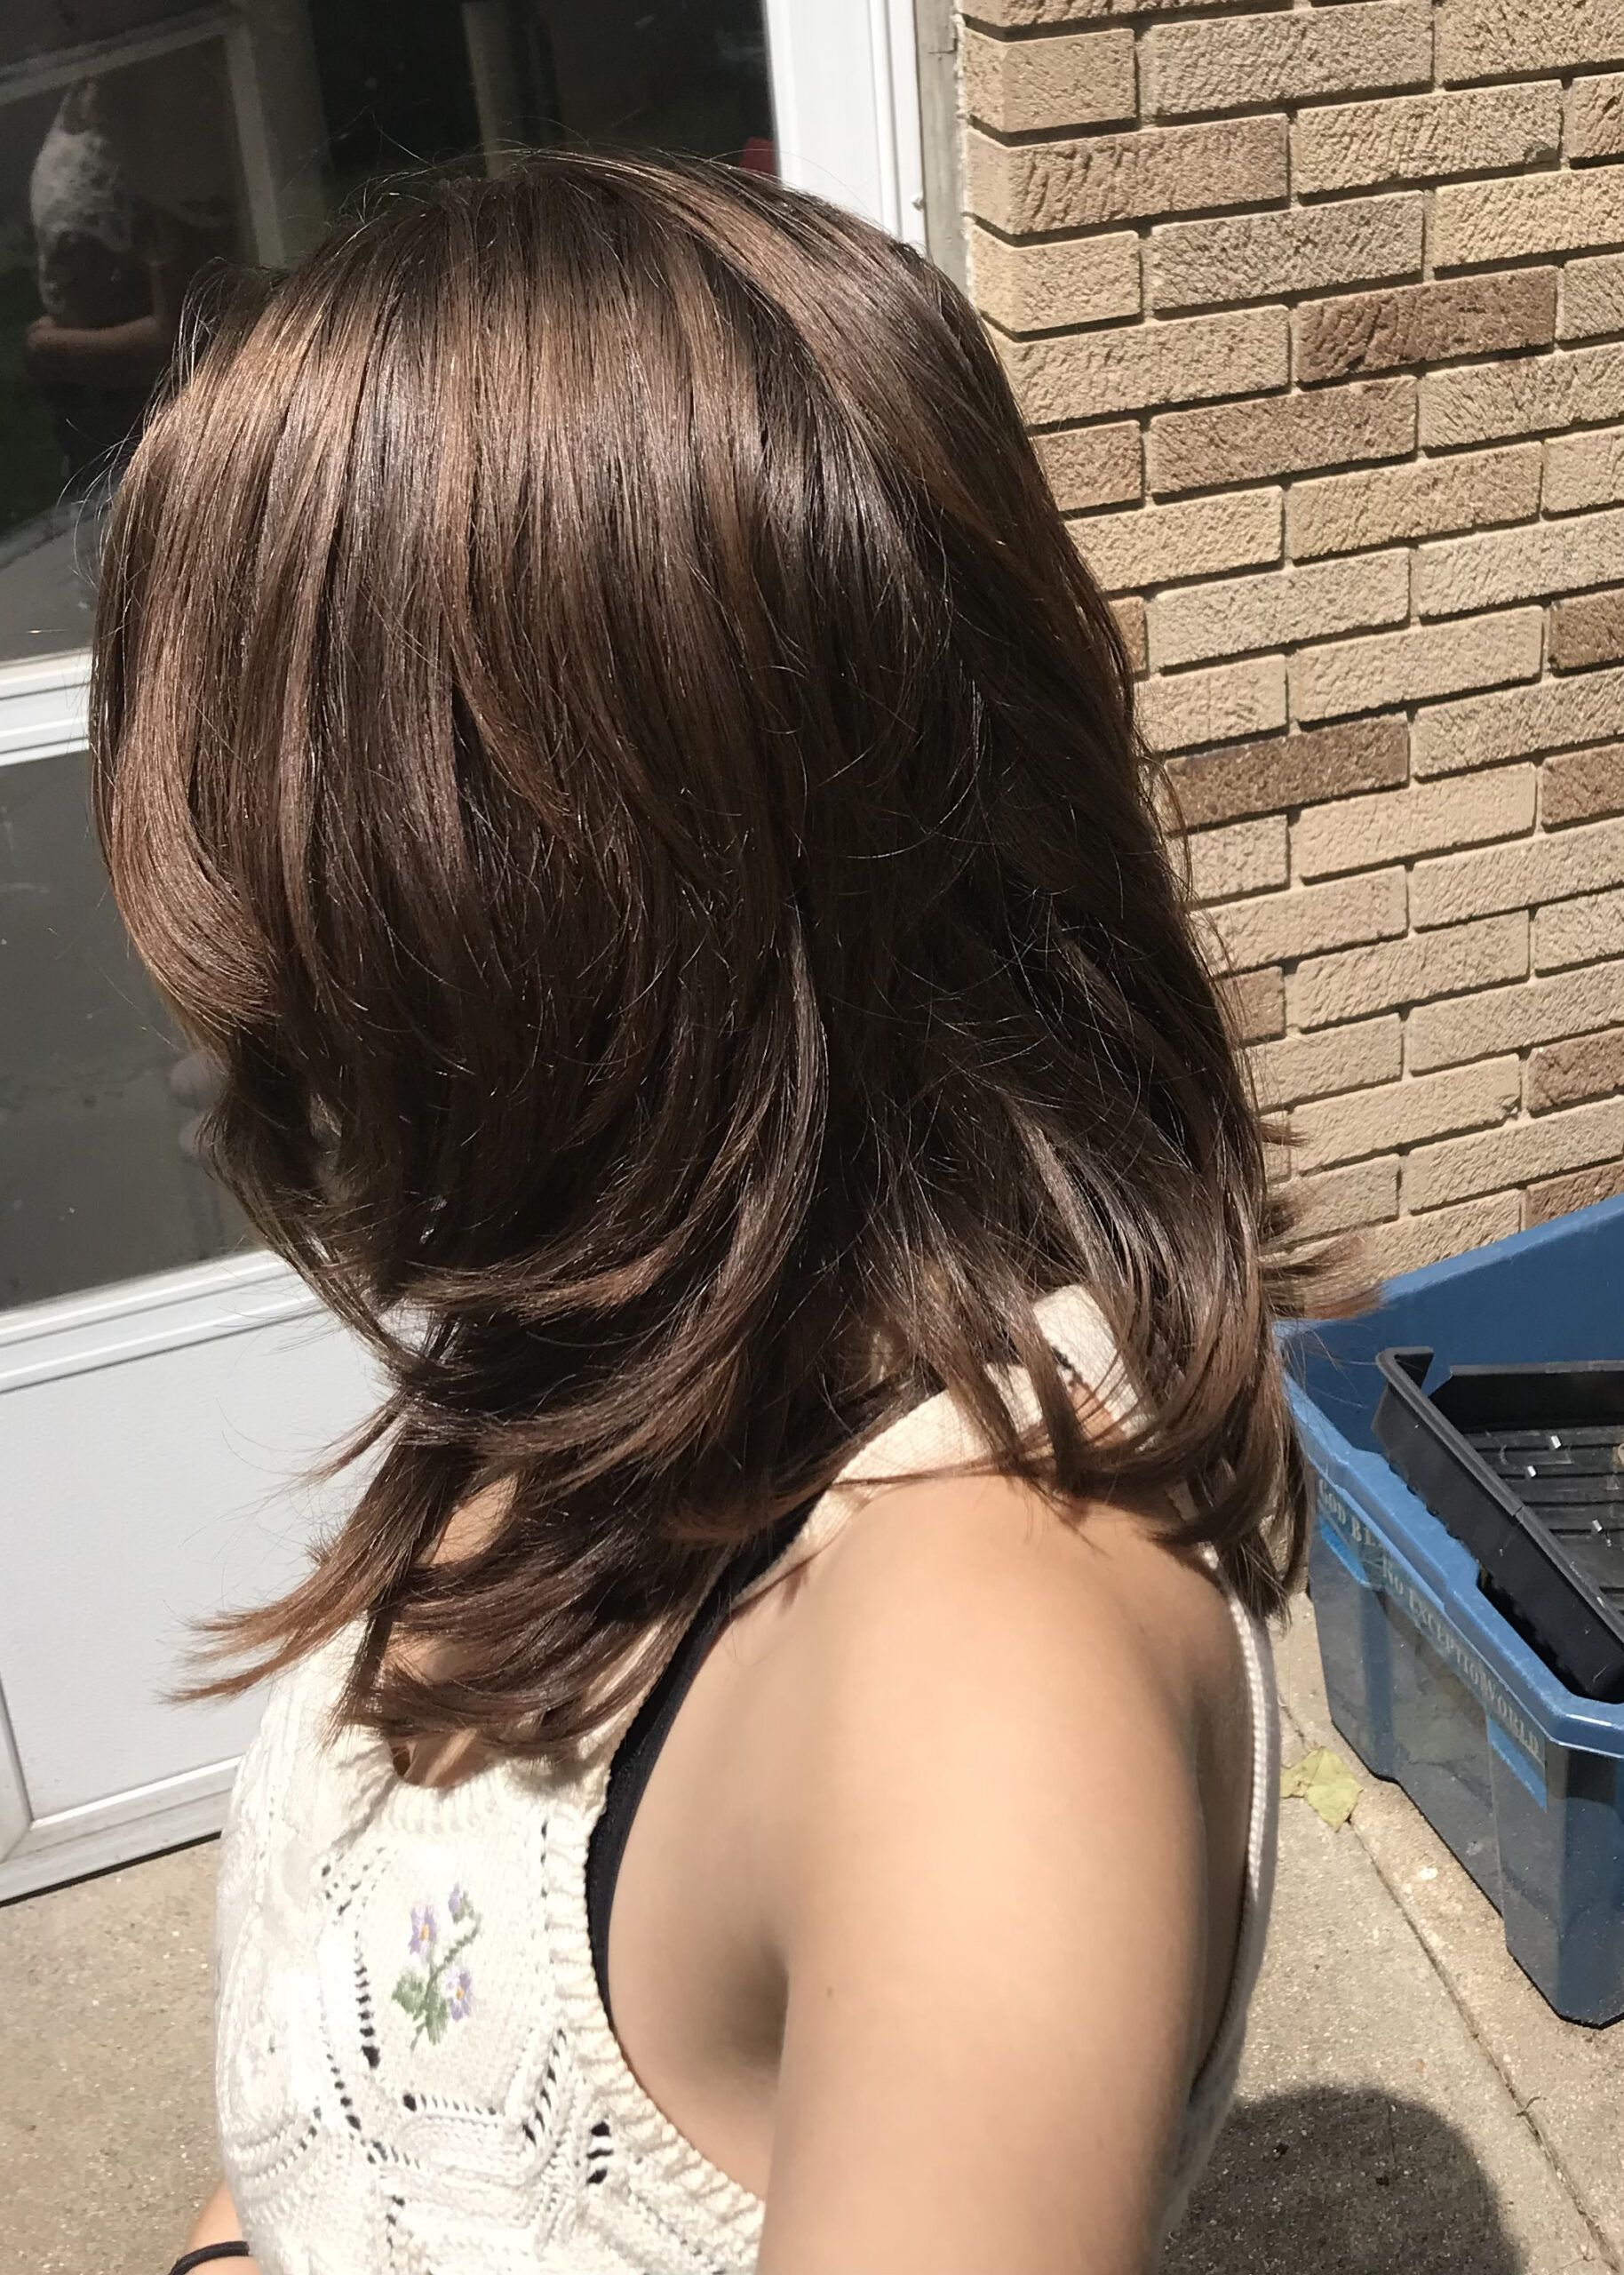 Hair after the cut